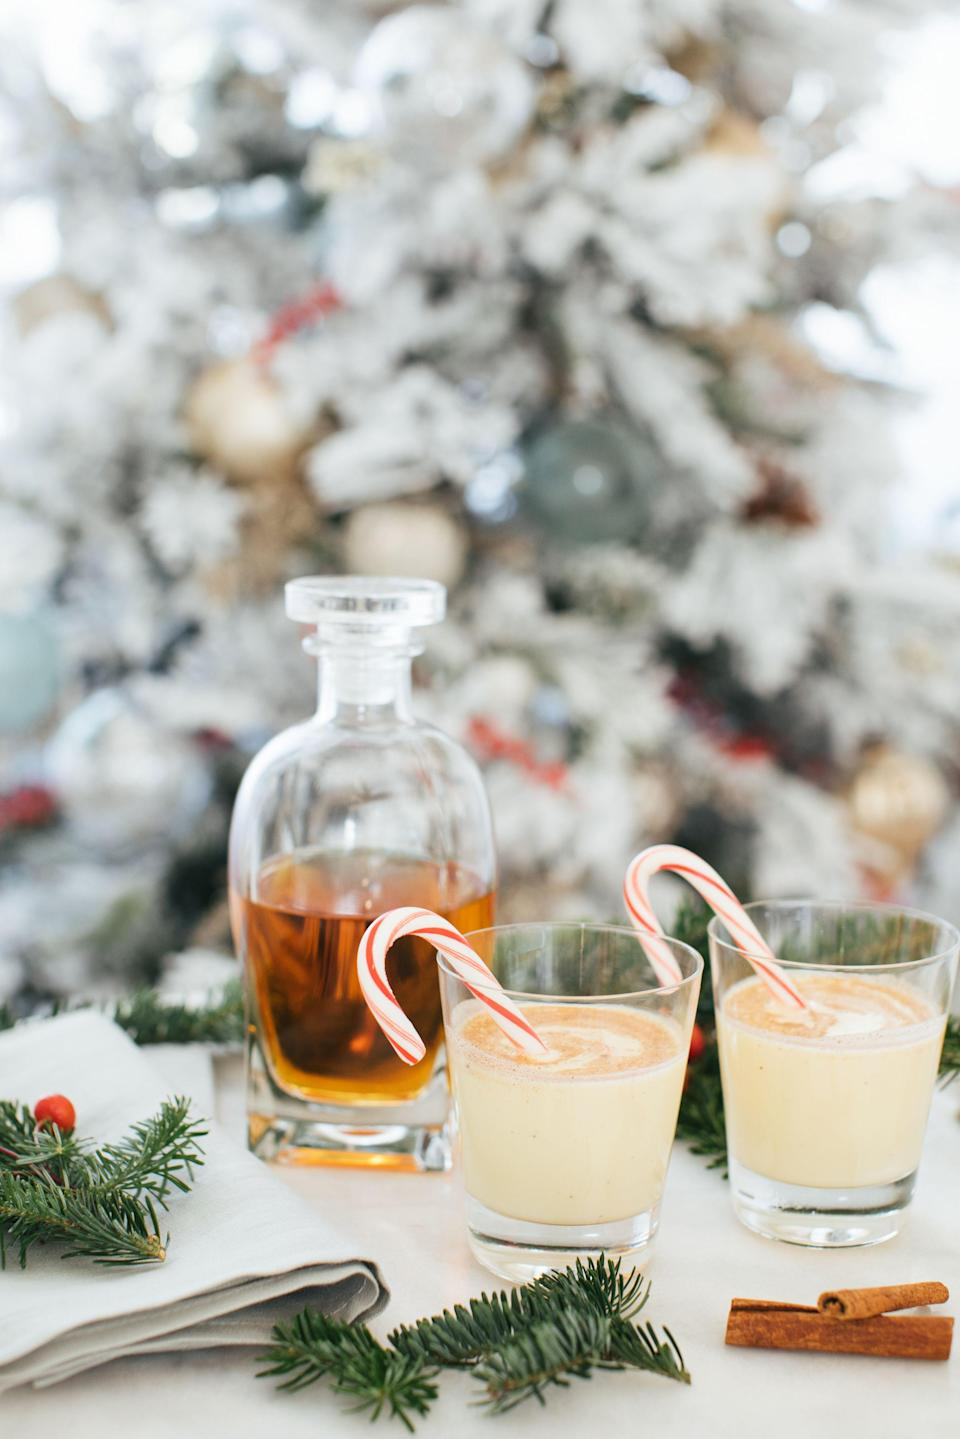 "<p>The holidays can be stressful, especially when you're hosting friends and family. You've already mastered <a href=""https://www.veranda.com/home-decorators/a28480947/napkin-folding/"" rel=""nofollow noopener"" target=""_blank"" data-ylk=""slk:the art of napkin folding"" class=""link rapid-noclick-resp"">the art of napkin folding</a>, dressed your table with <a href=""https://www.veranda.com/home-decorators/g1607/christmas-tables/"" rel=""nofollow noopener"" target=""_blank"" data-ylk=""slk:eye-catching place settings"" class=""link rapid-noclick-resp"">eye-catching place settings</a>, and polished up that <a href=""https://www.veranda.com/food-recipes/g29123611/types-of-cutlery/"" rel=""nofollow noopener"" target=""_blank"" data-ylk=""slk:stunningly obscure silverware"" class=""link rapid-noclick-resp"">stunningly obscure silverware</a>, but have you thought about the signature drink you'll serve up? Don't worry, we've got that part down for you. </p><p> Nothing spreads cheer during the colder winter months quite as well as a festive cocktail. Whether you're hosting a <a href=""https://www.veranda.com/home-decorators/g29293956/hanukkah-decorations/"" rel=""nofollow noopener"" target=""_blank"" data-ylk=""slk:chic dinner party during Hanukkah"" class=""link rapid-noclick-resp"">chic dinner party during Hanukkah</a> or gathering with neighbors or relatives for a Christmas or New Year's toast, we have a full menu of options that are sure to satisfy any crowd. </p><p>From a warming Mexican-inspired Negroni to an oh-so-delightful gingerbread martini, these 19 cocktails hand-selected by VERANDA tastemakers are sure to make even Scrooge feel jolly. Cheers!<br></p>"